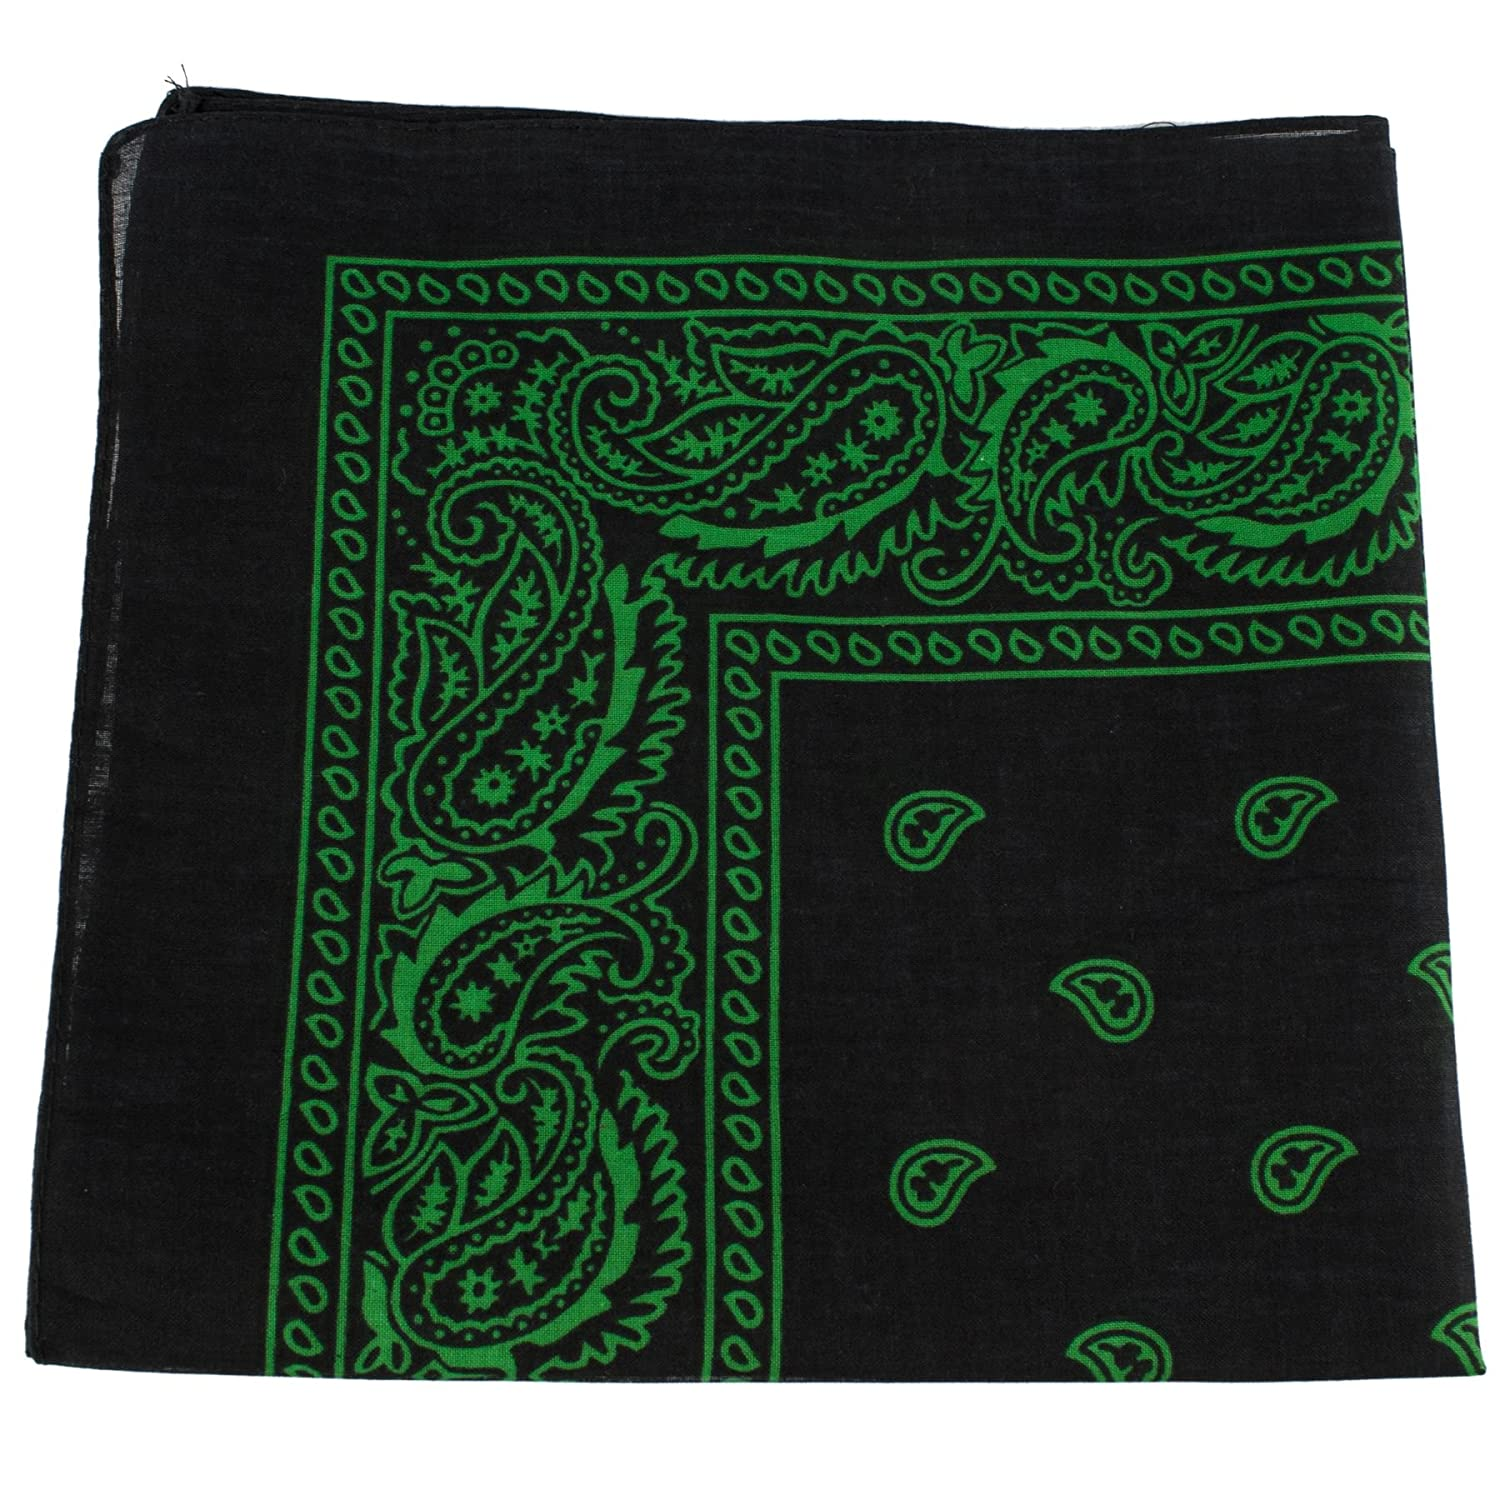 Black Paisley Bandana Hair Tie Neck Wrist Band